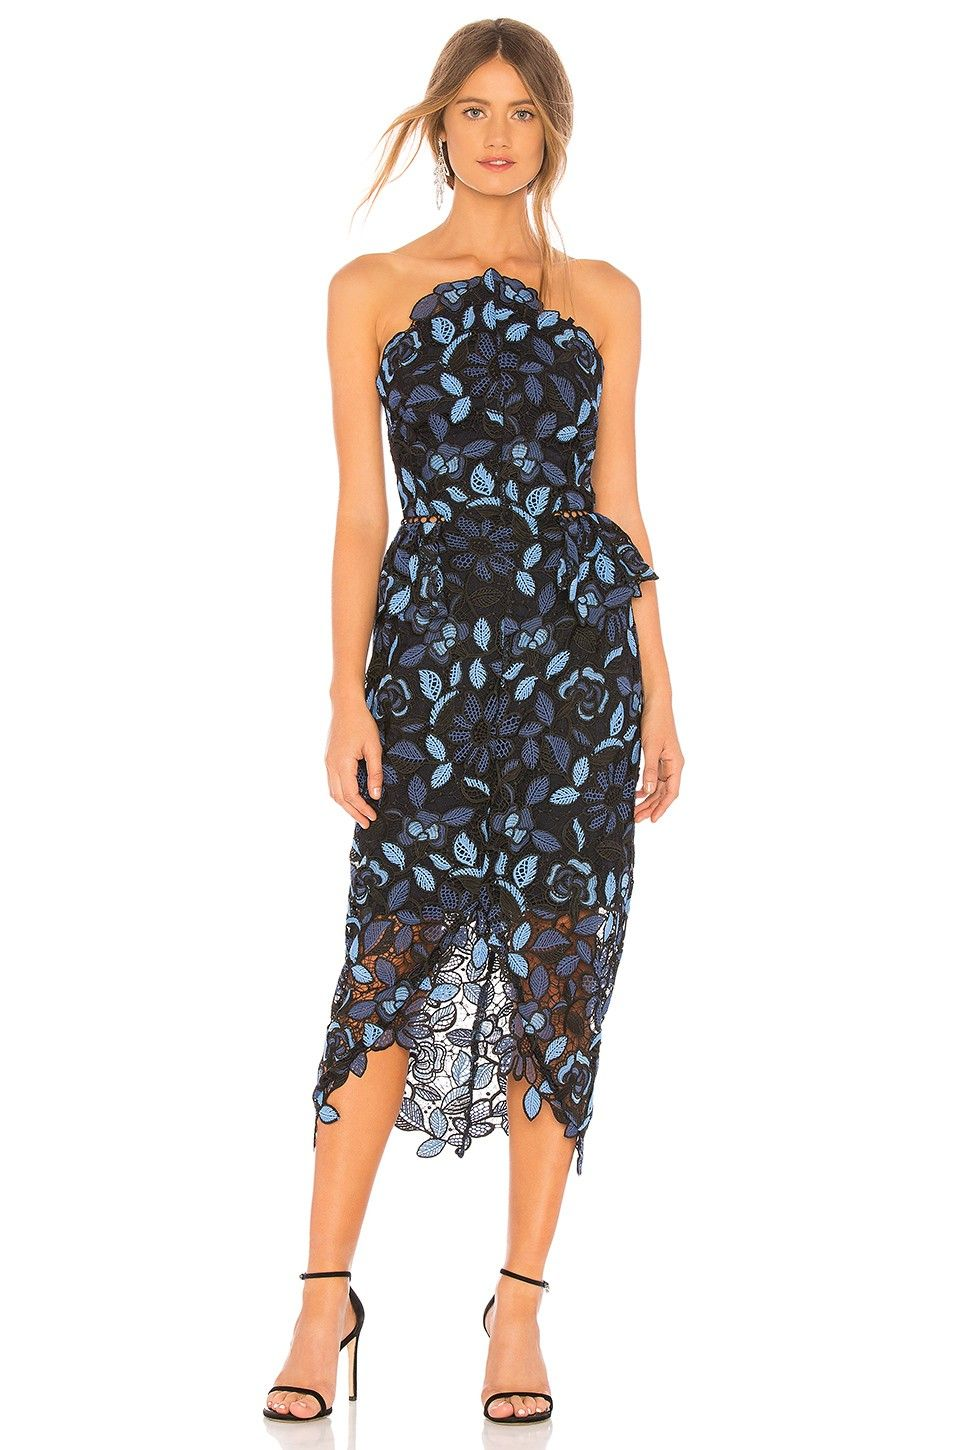 ELLIATT Times Dress in Blue Multi from in 2020